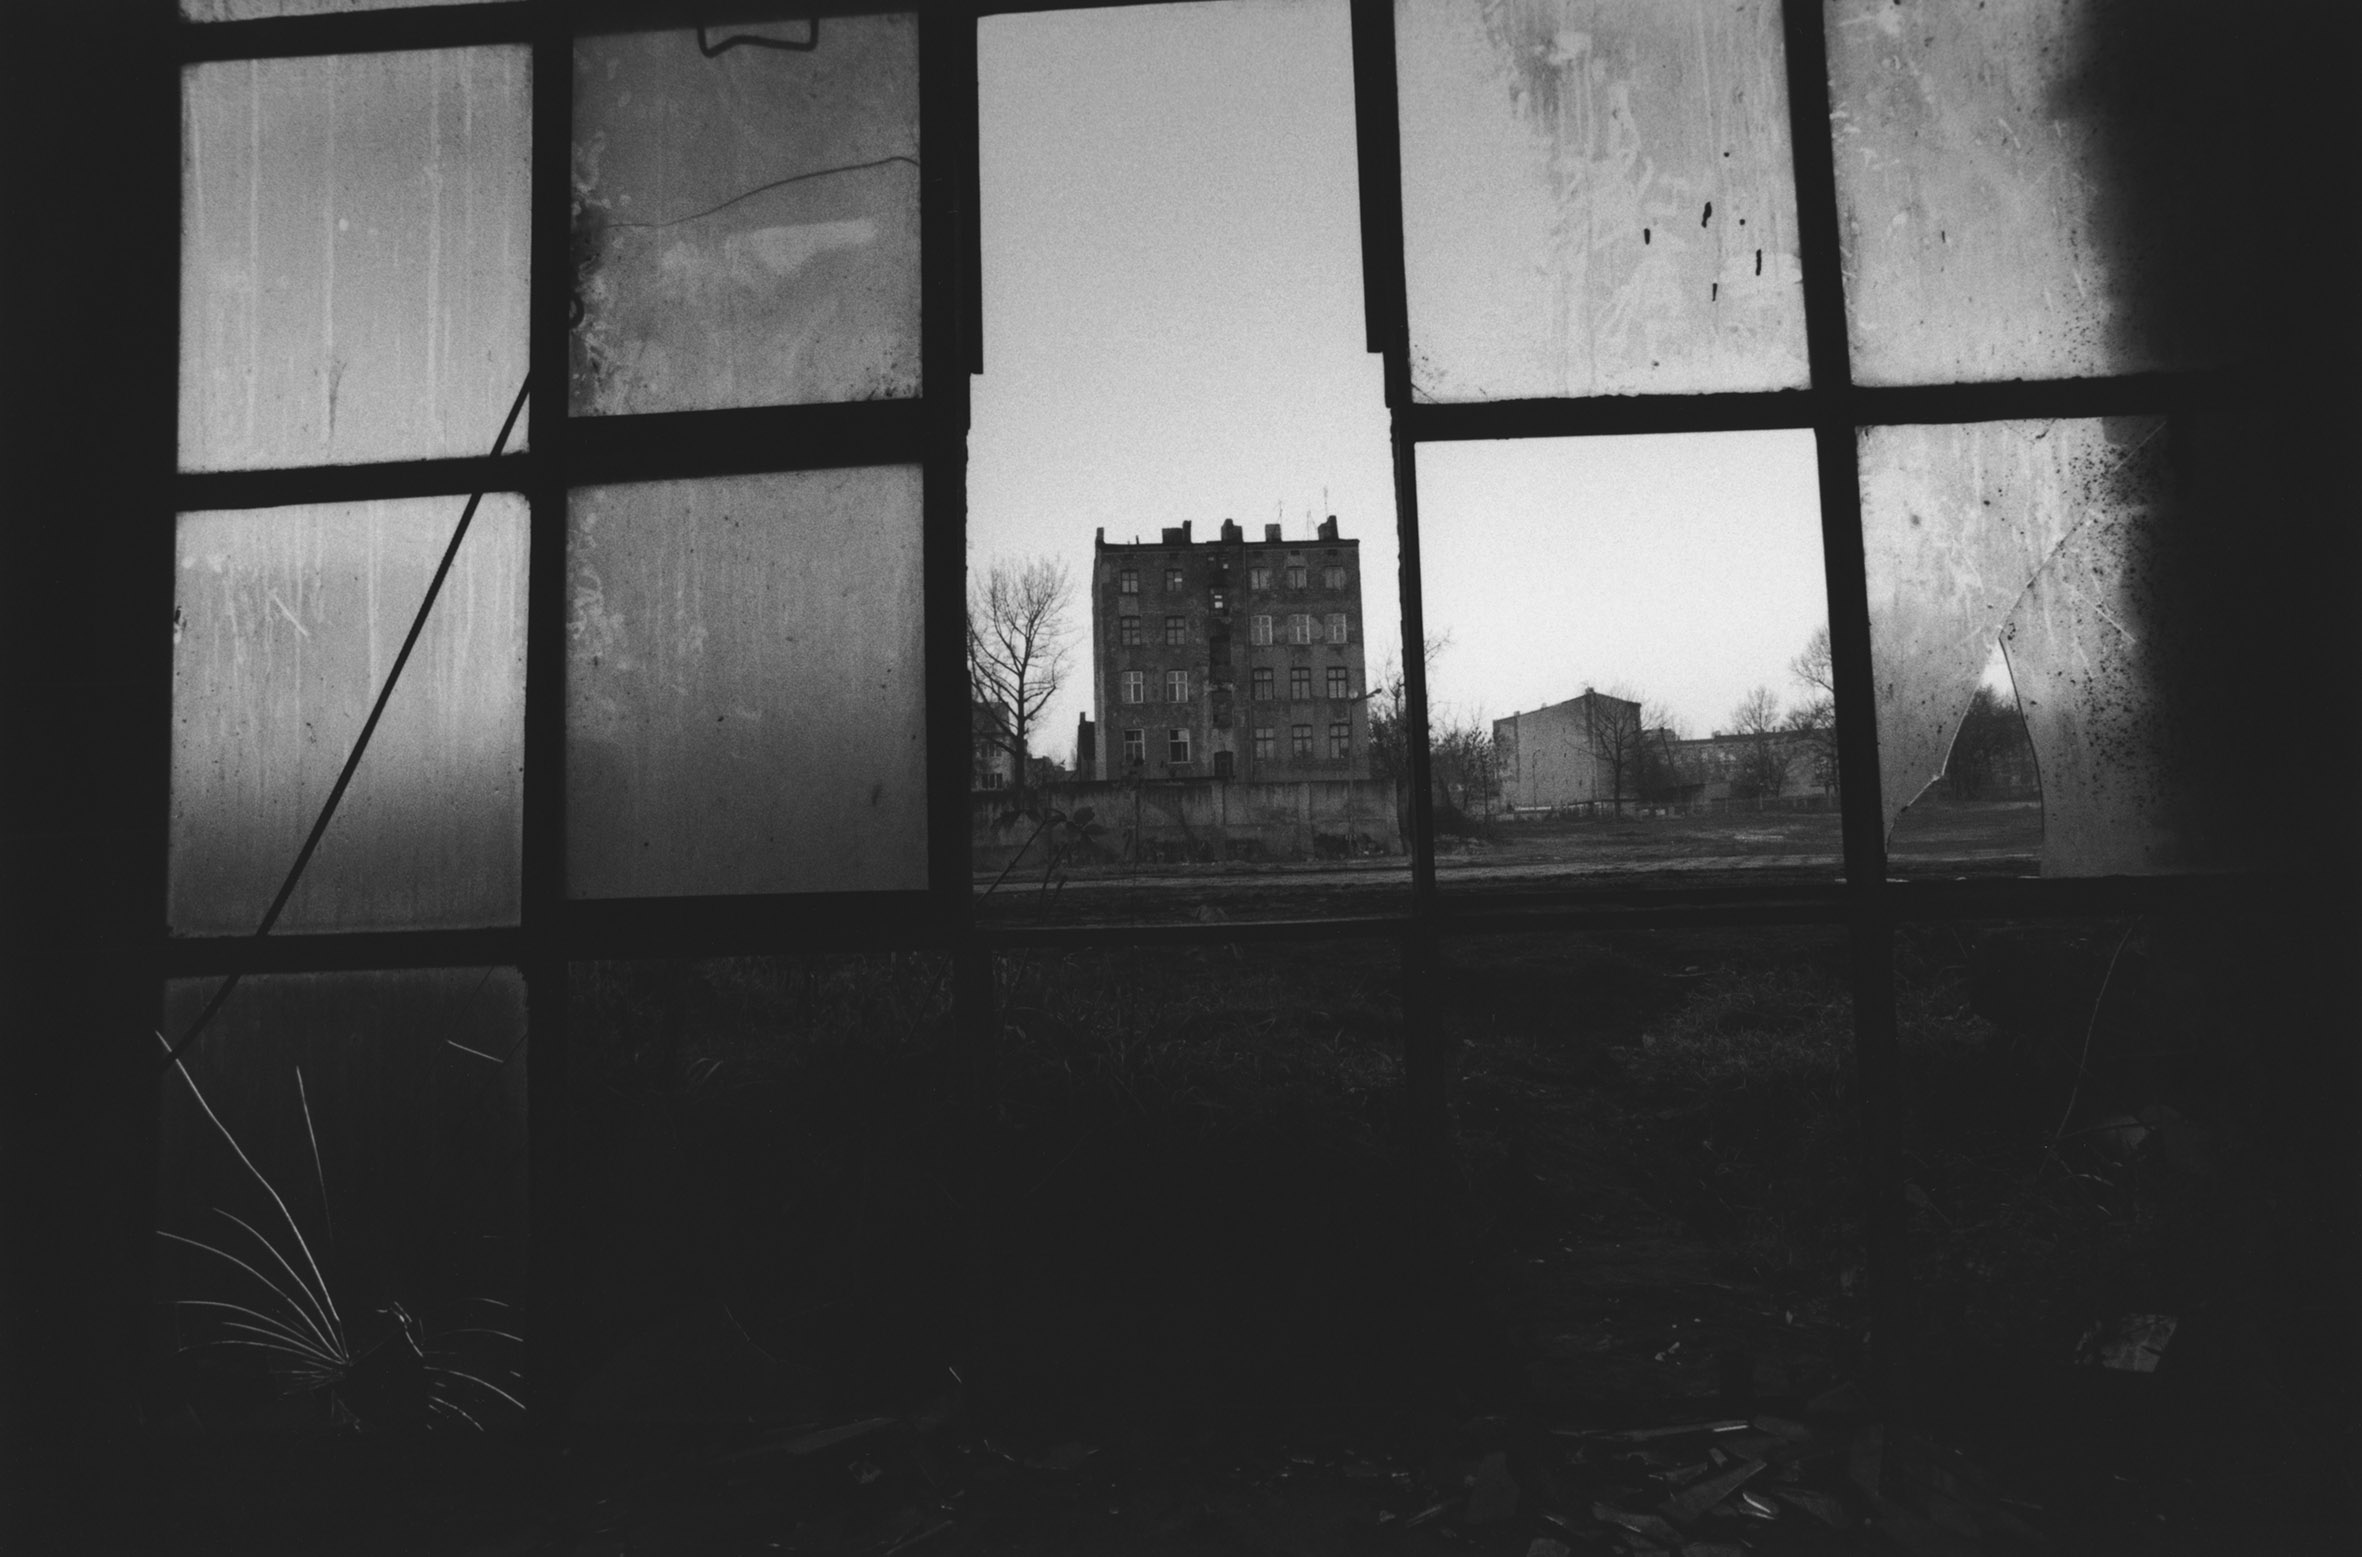 04_PressImage l David Lynch, Untitled (Lodz), 2000_1